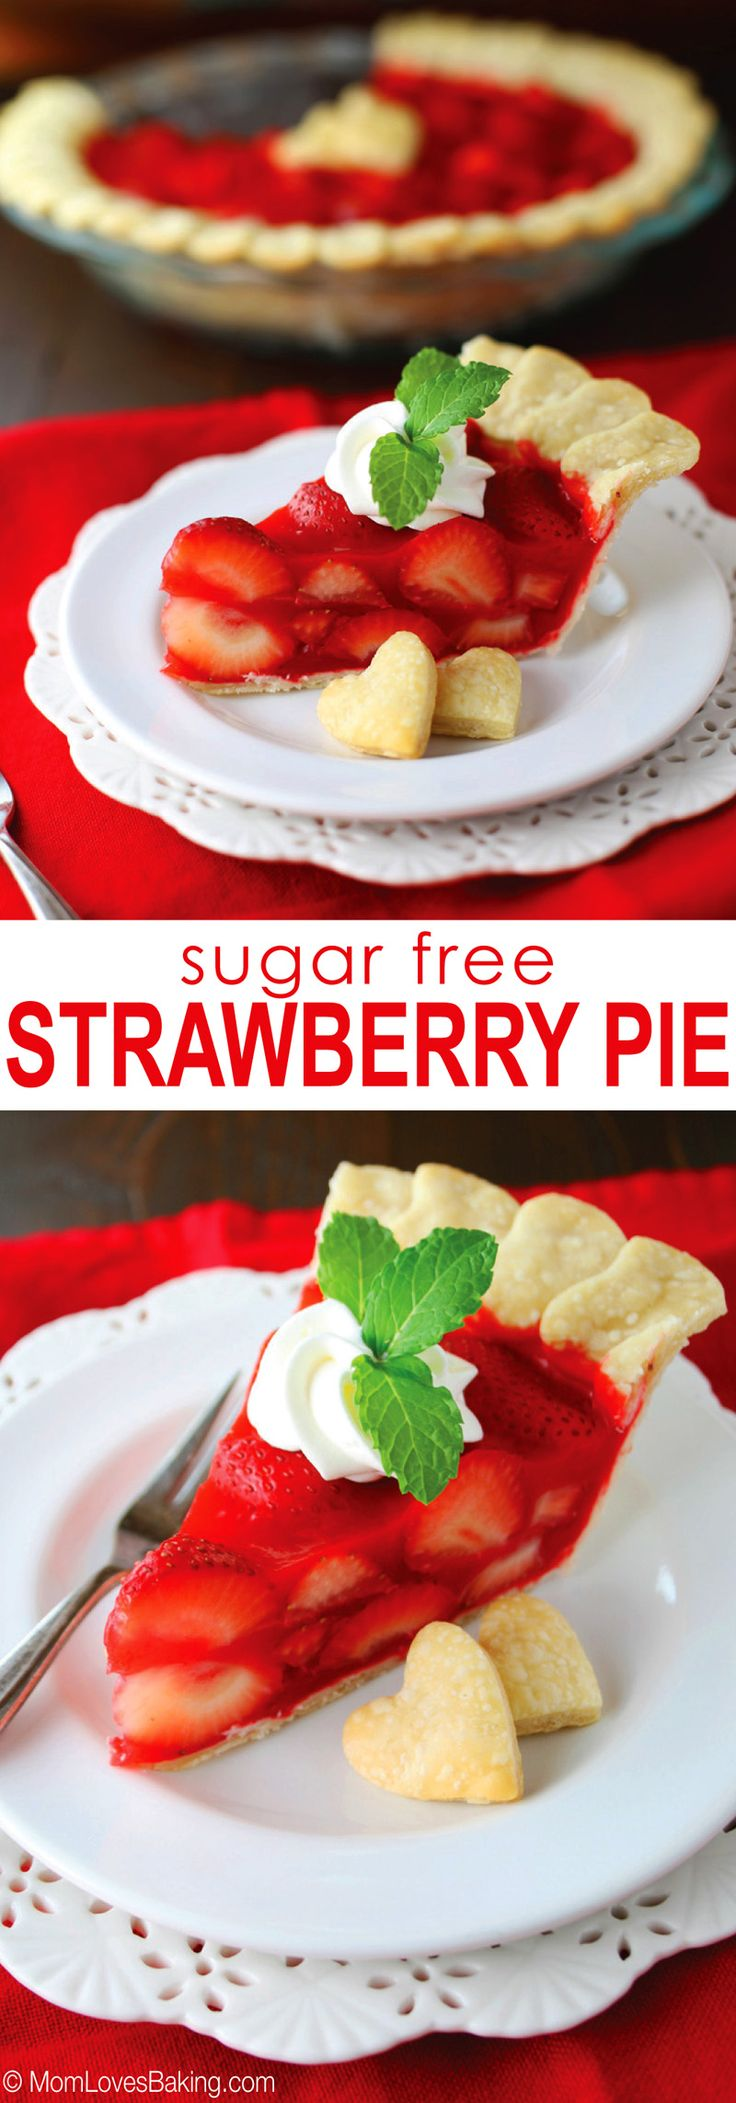 A slightly healthier, sugar free version of the Strawberry Pie from the Big Boy restaurant I remember having as a kid. It's berrylicious! Click pin to get the recipe from MomLovesBaking.com